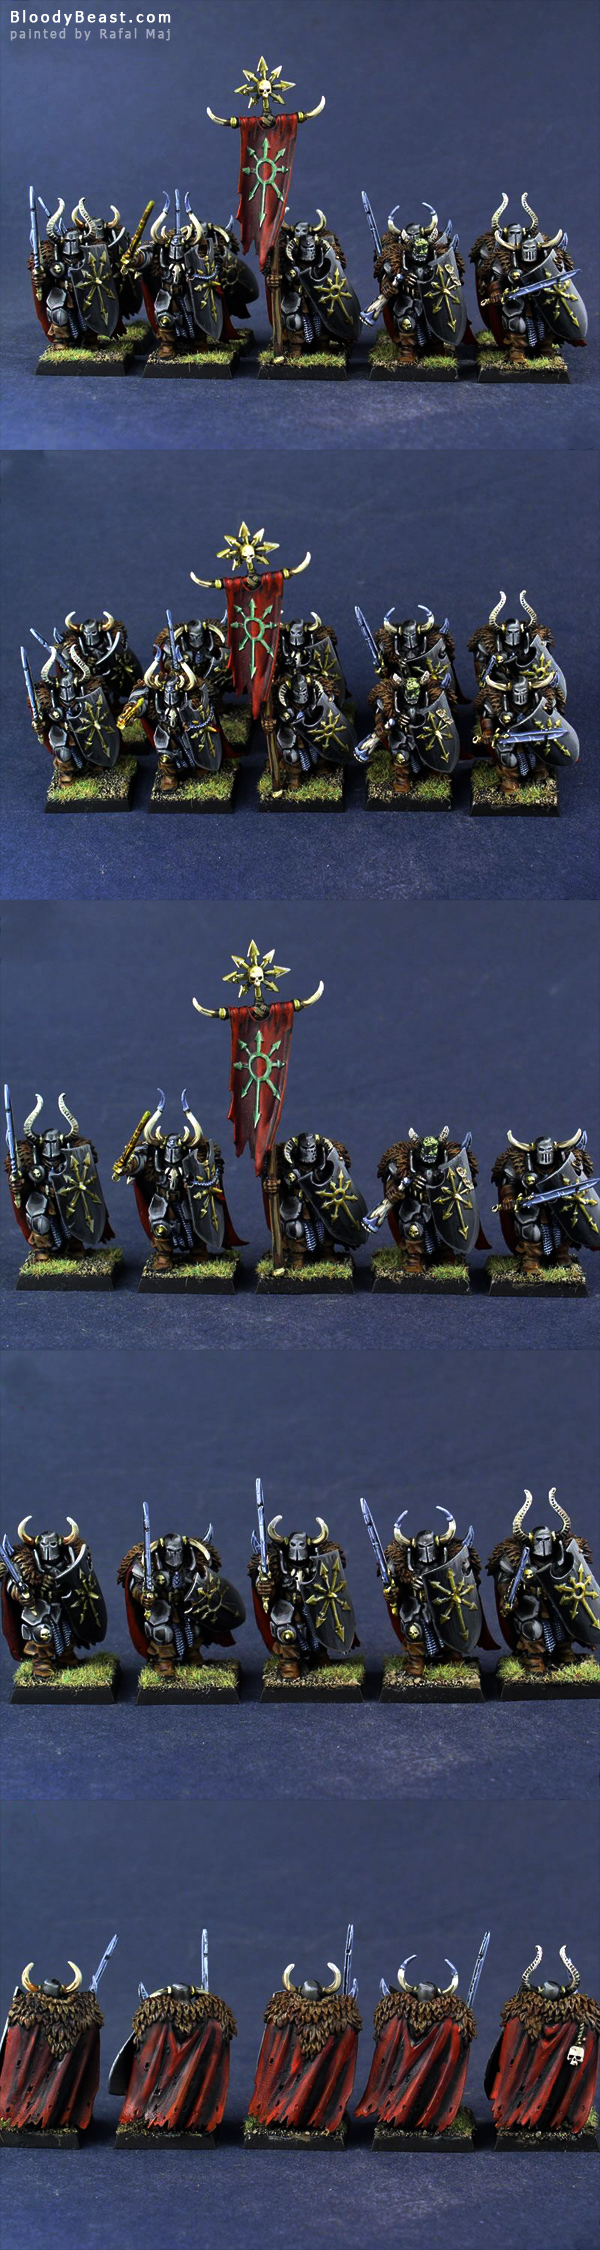 Chaos Warriors of Undivided painted by Rafal Maj (BloodyBeast.com)